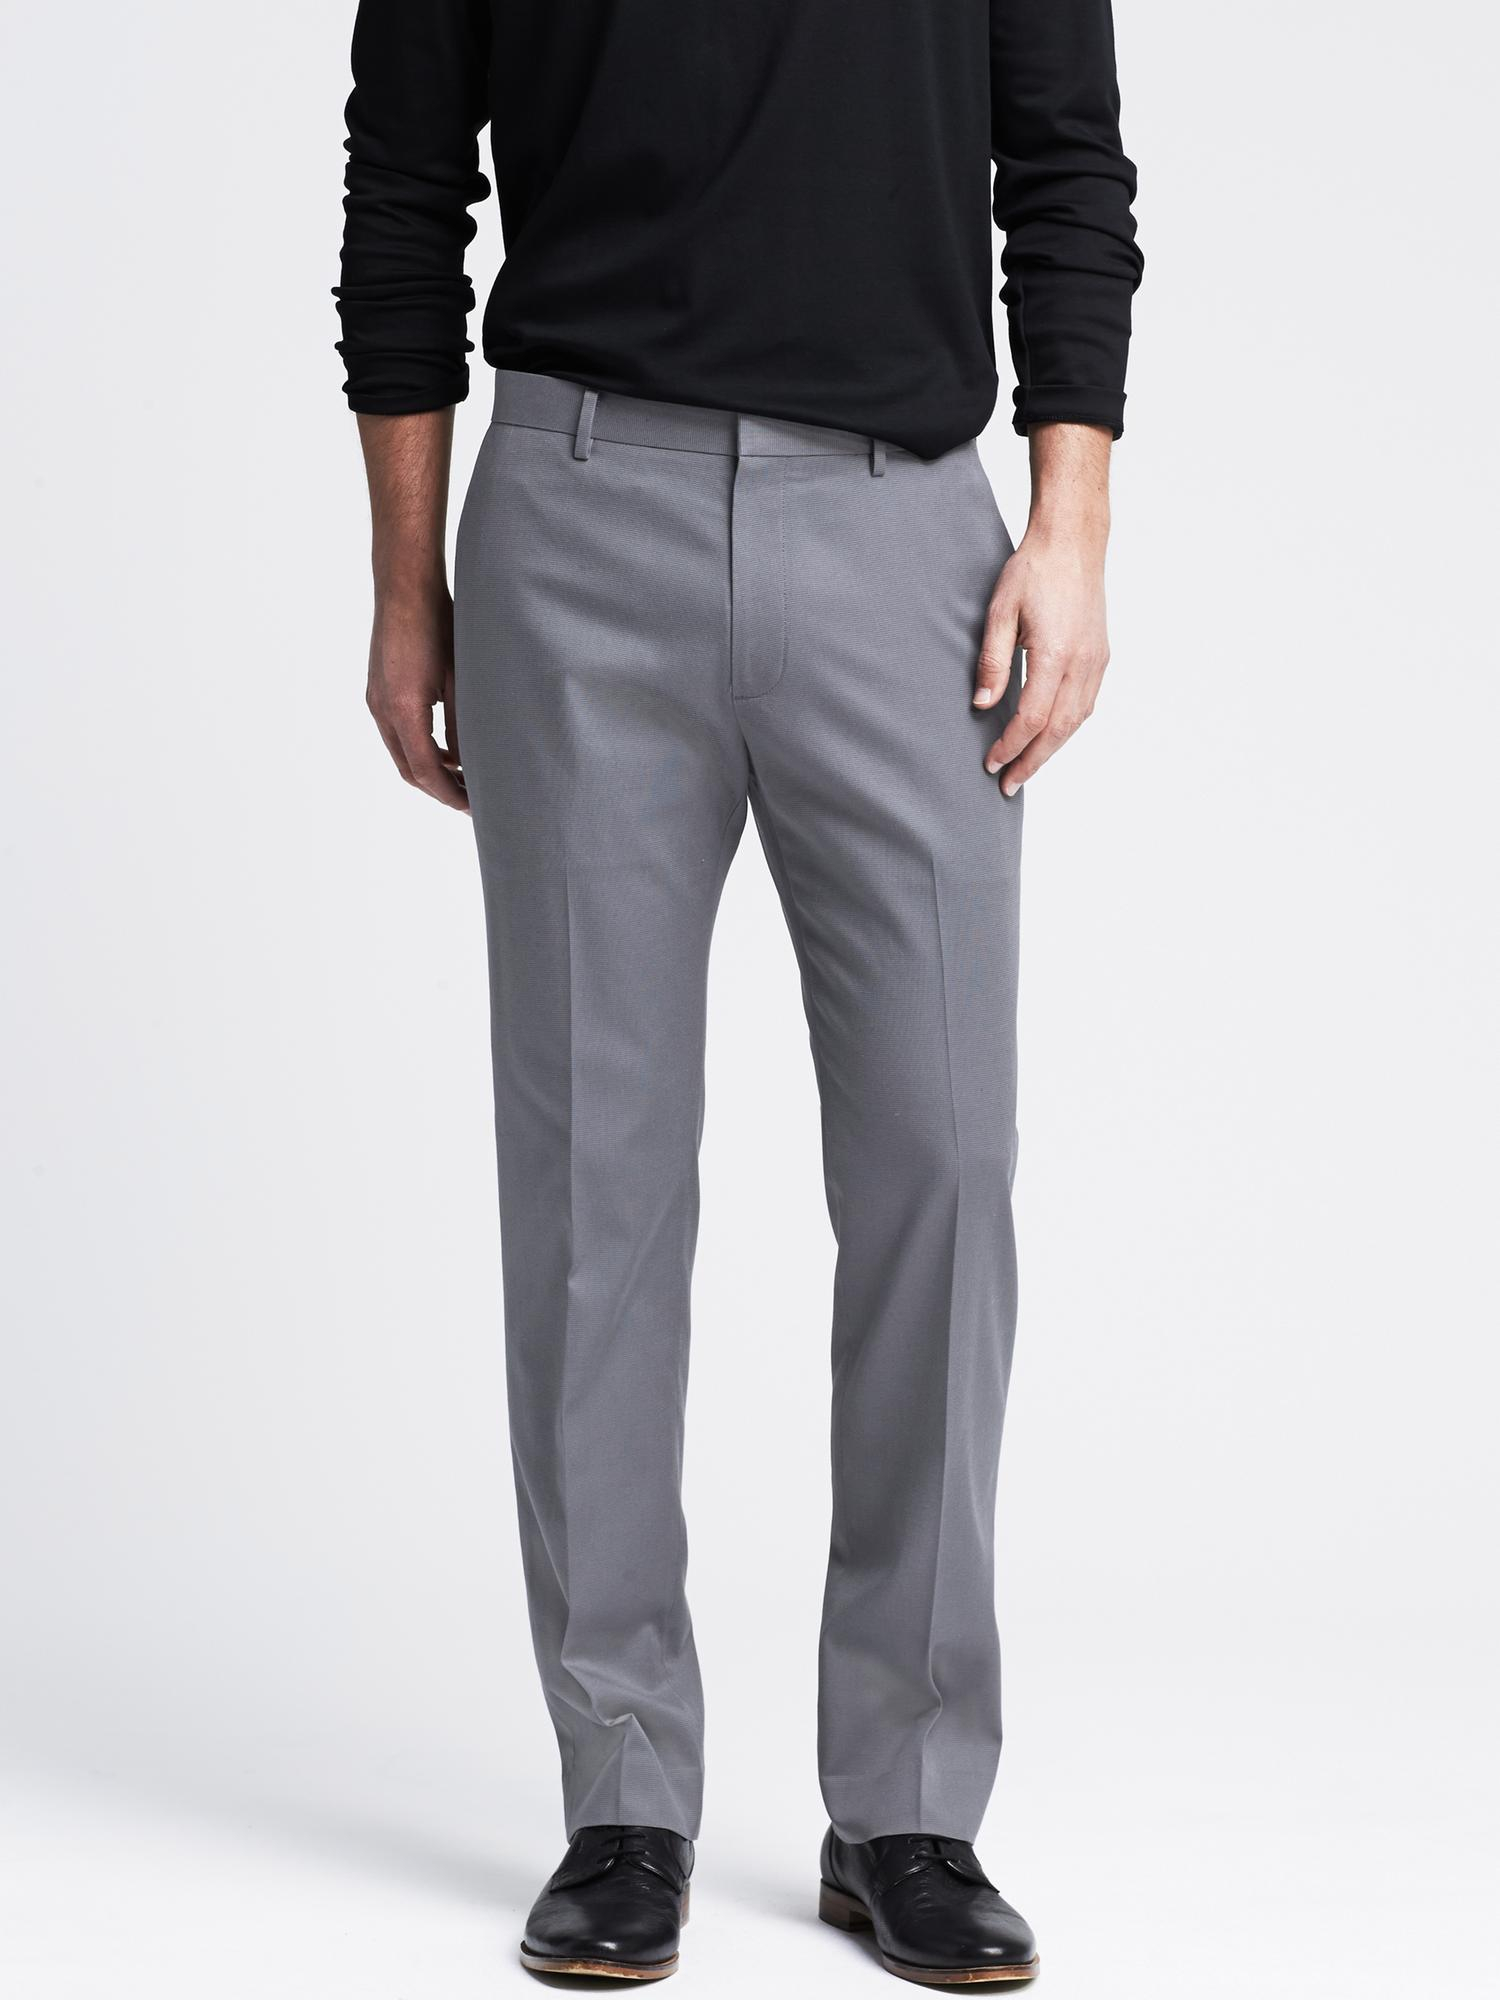 12ad498a6244 Lyst - Banana Republic Tailored Slim Non-iron Cotton Dress Pant in ...